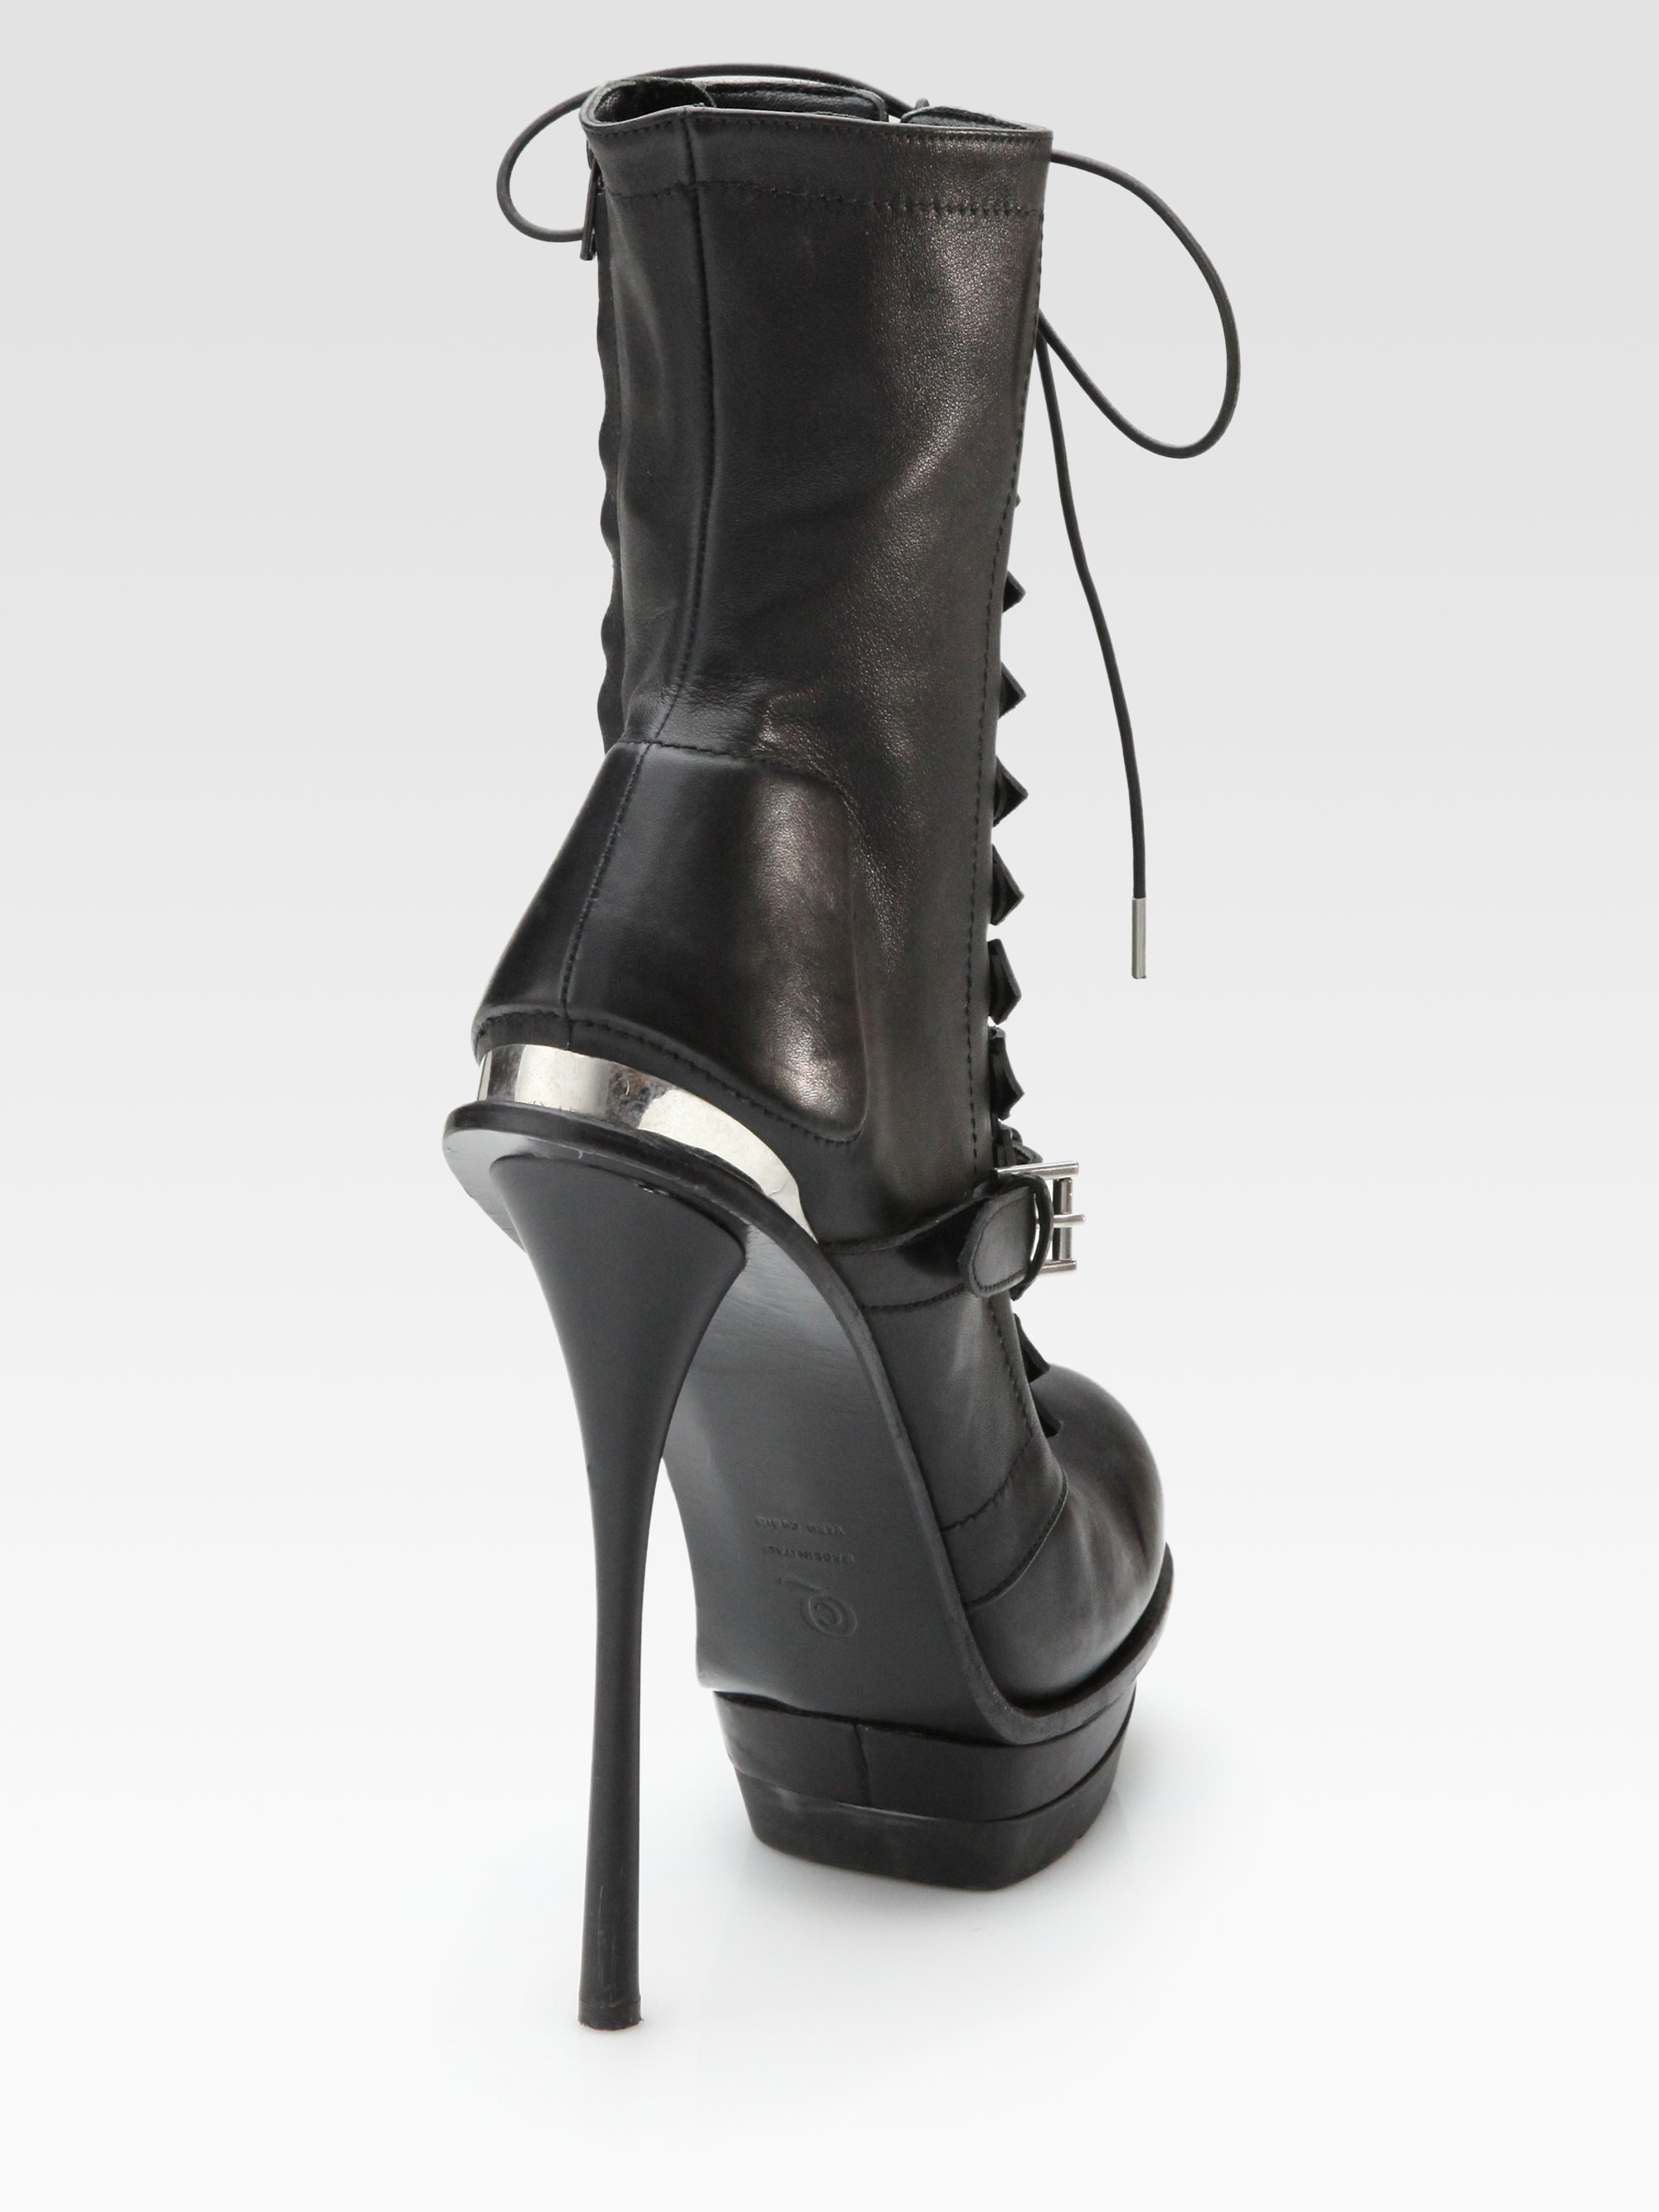 Alexander McQueen Lace-Up Platform Booties discount factory outlet gwnU0